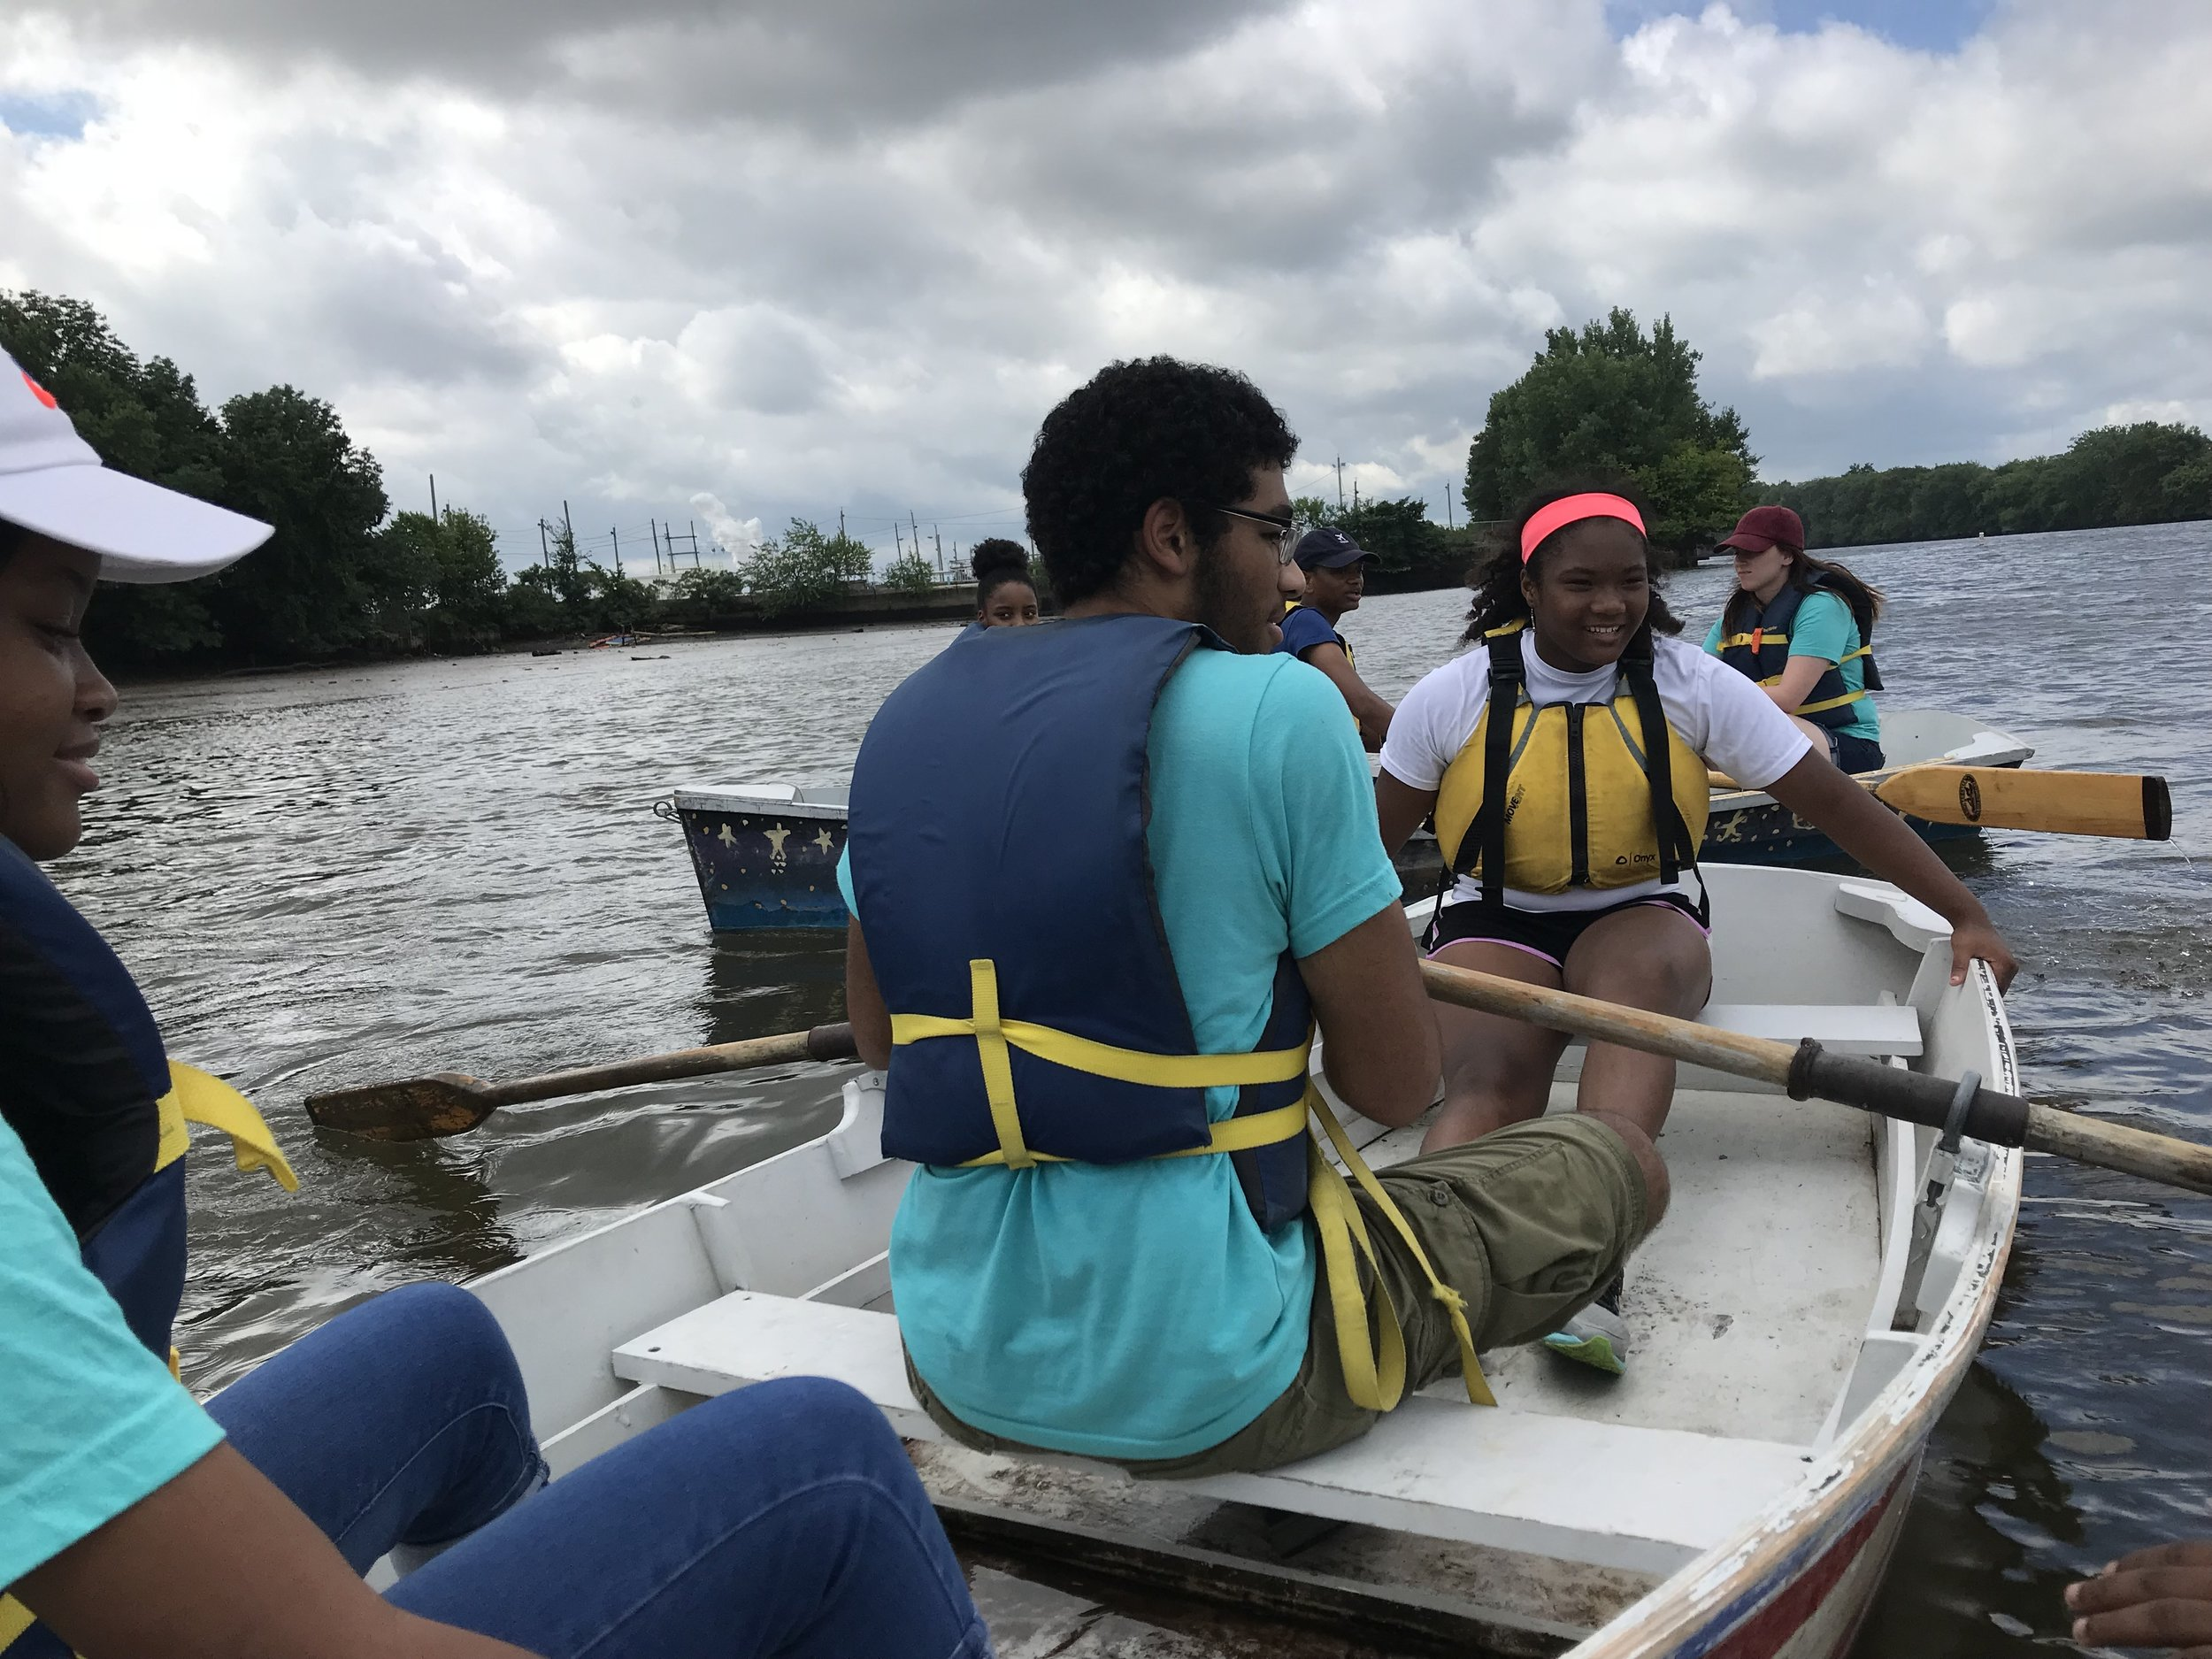 Anastasia and Beth spent some time over the 2018 summer season out on the water, collecting data and collaborating with youth from Philadelphia, PA and Camden, NJ who are working to protect our local watershed and promote environmental stewardship. These youth are part of Riverways, a collaboration between Bartram's Garden, Independence Seaport Museum, Urban Promise, and Glen Foerd on the Delaware.